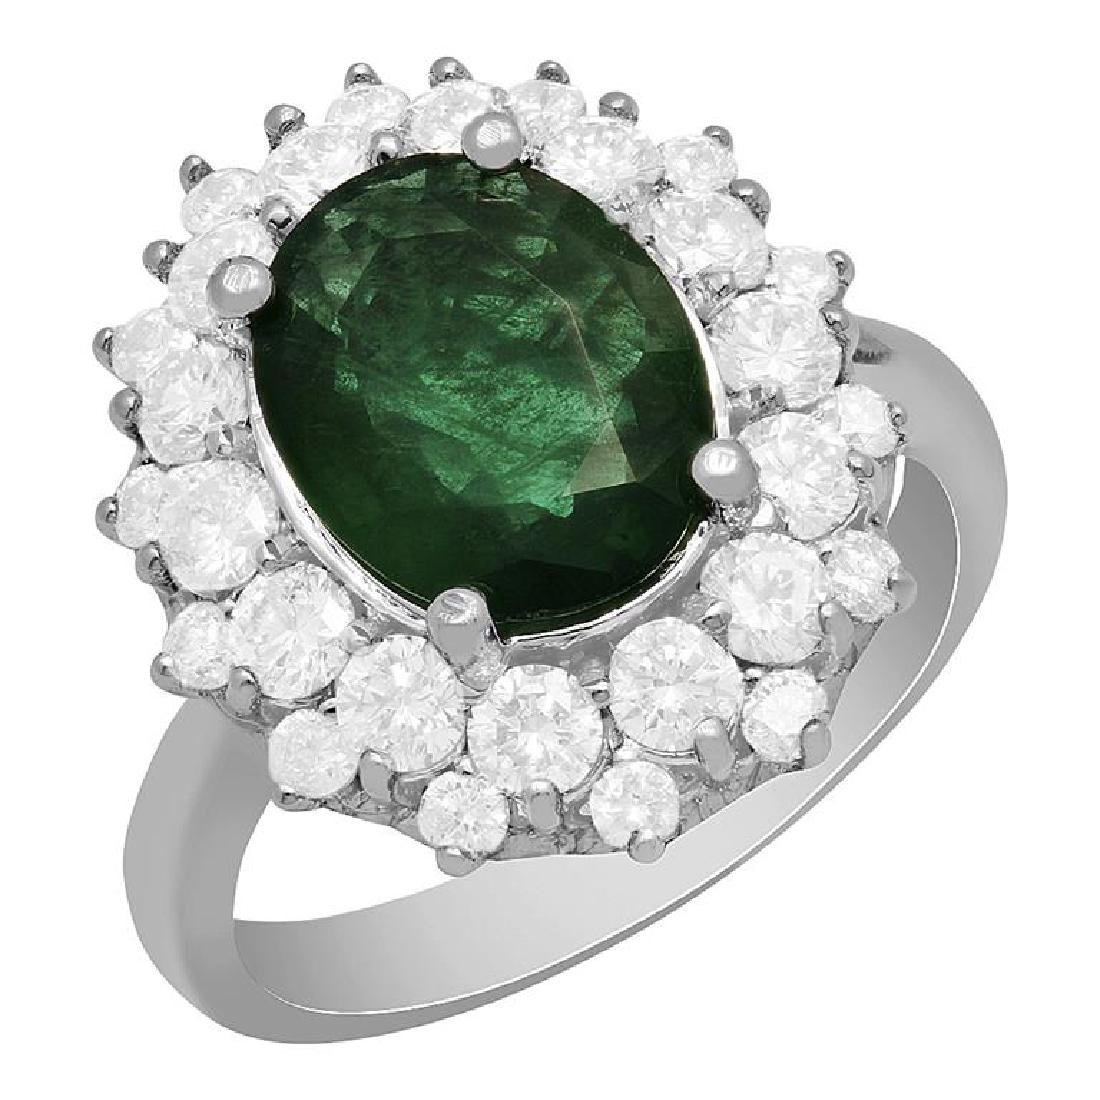 14k White Gold 2.10ct Emerald 1.61ct Diamond Ring